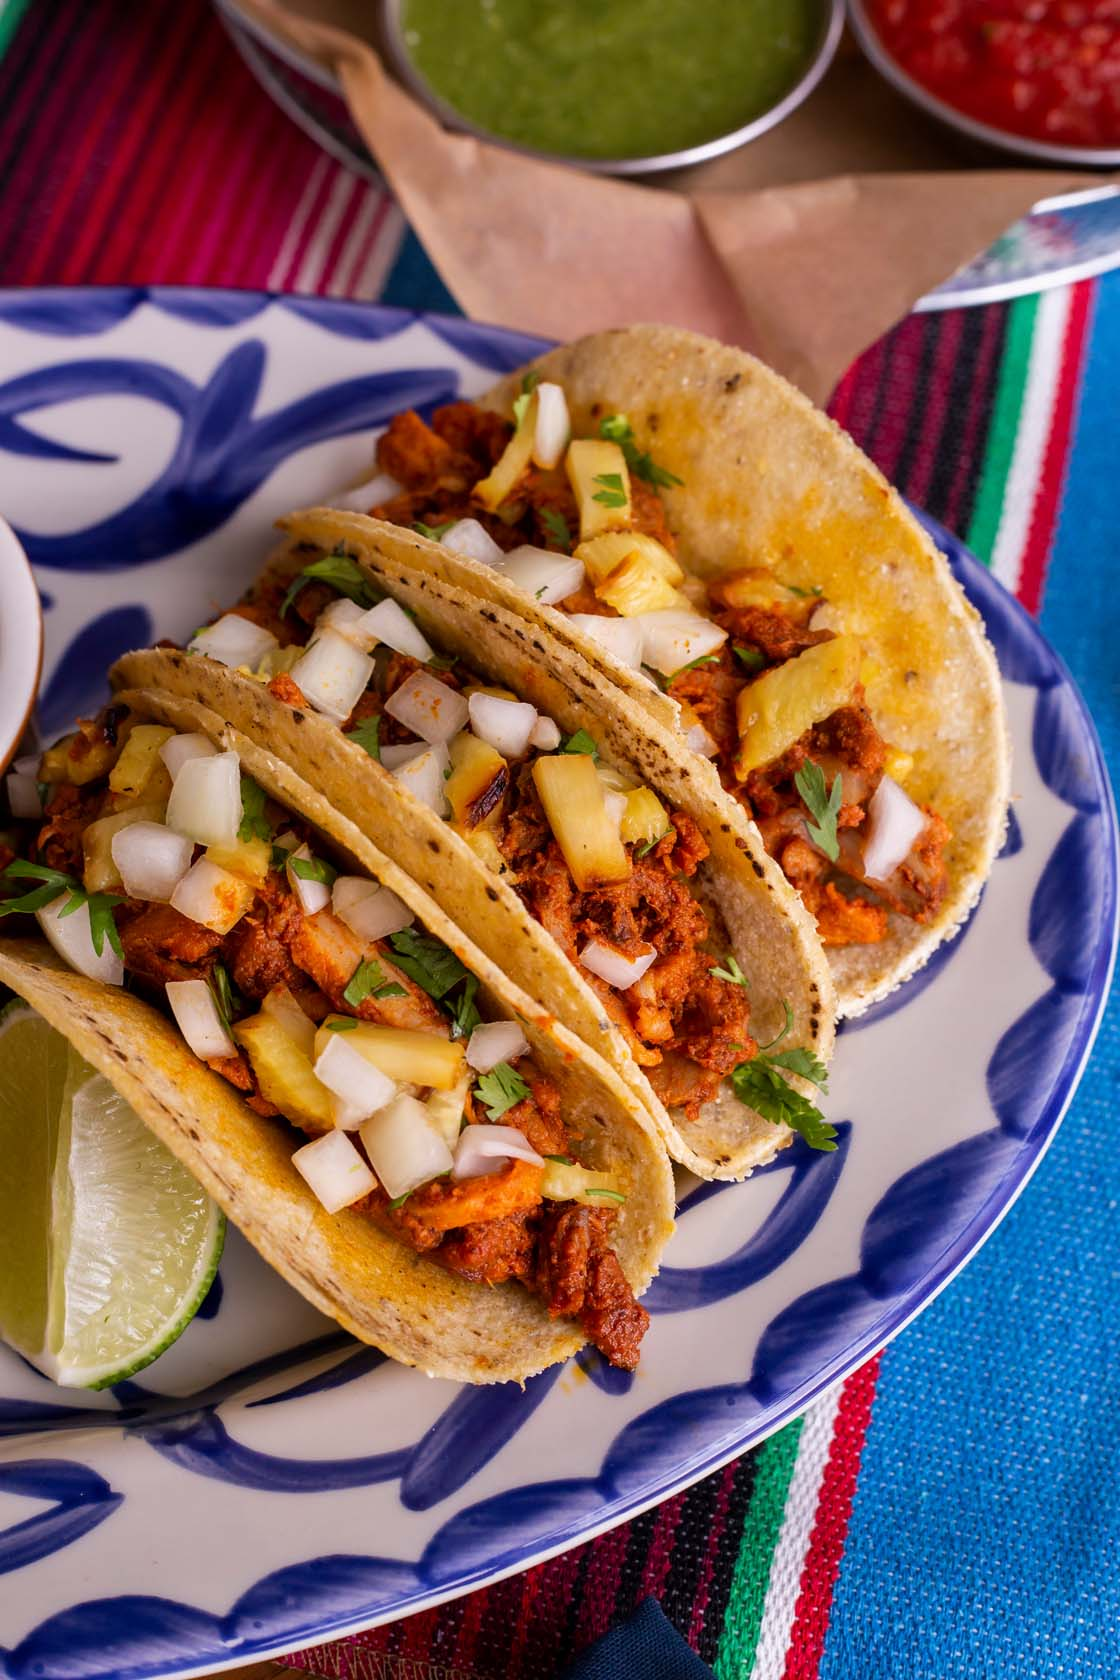 Three plated tacos filled with chicken Tinga and chopped toppings in corn tortillas.